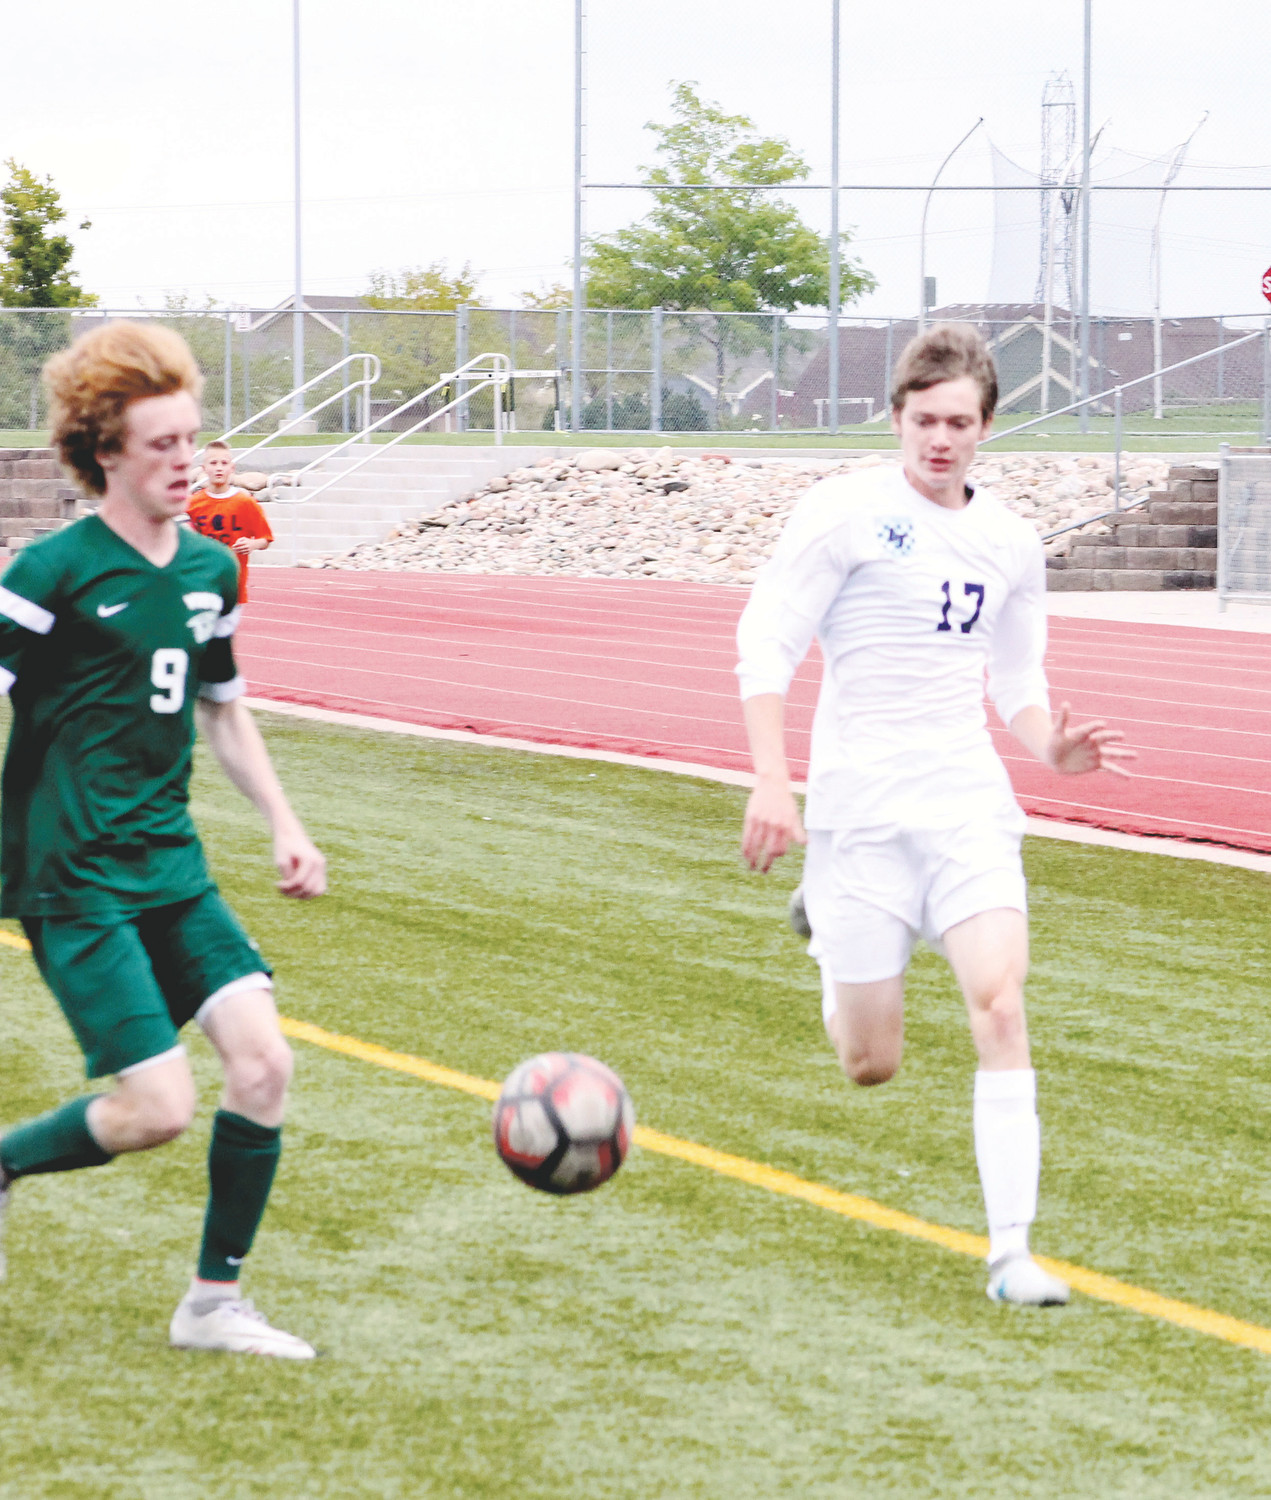 Consistent running speed can be used as a weapon to score goals in soccer. Here, Legend's Josh Harnden, right, and Mountain Vista's Nate Robinson race after the ball in a Continental League game earlier this season.